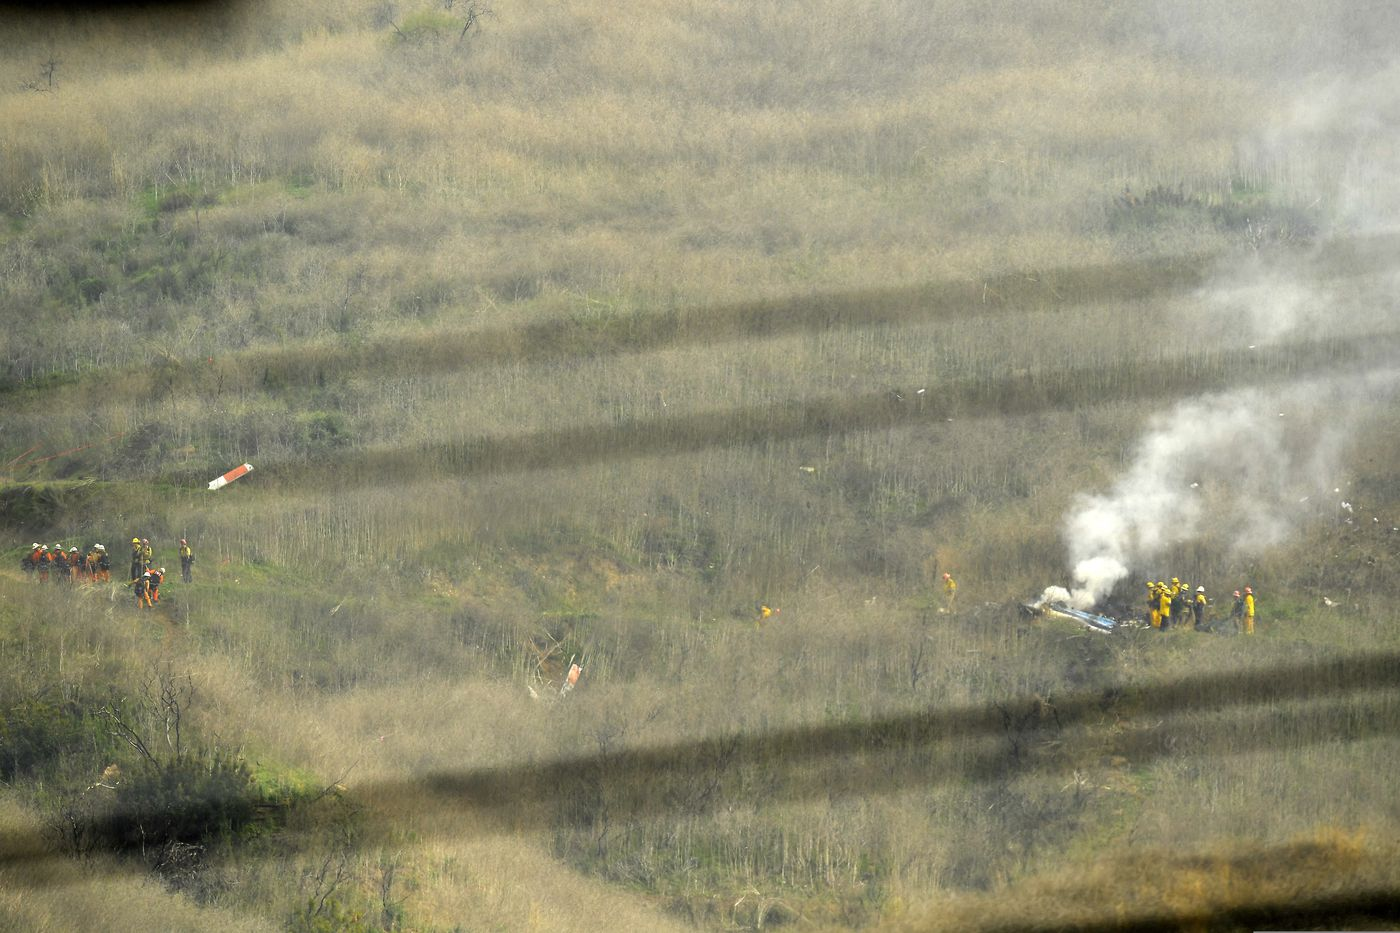 Firefighters work at the scene of the crash site Sunday.